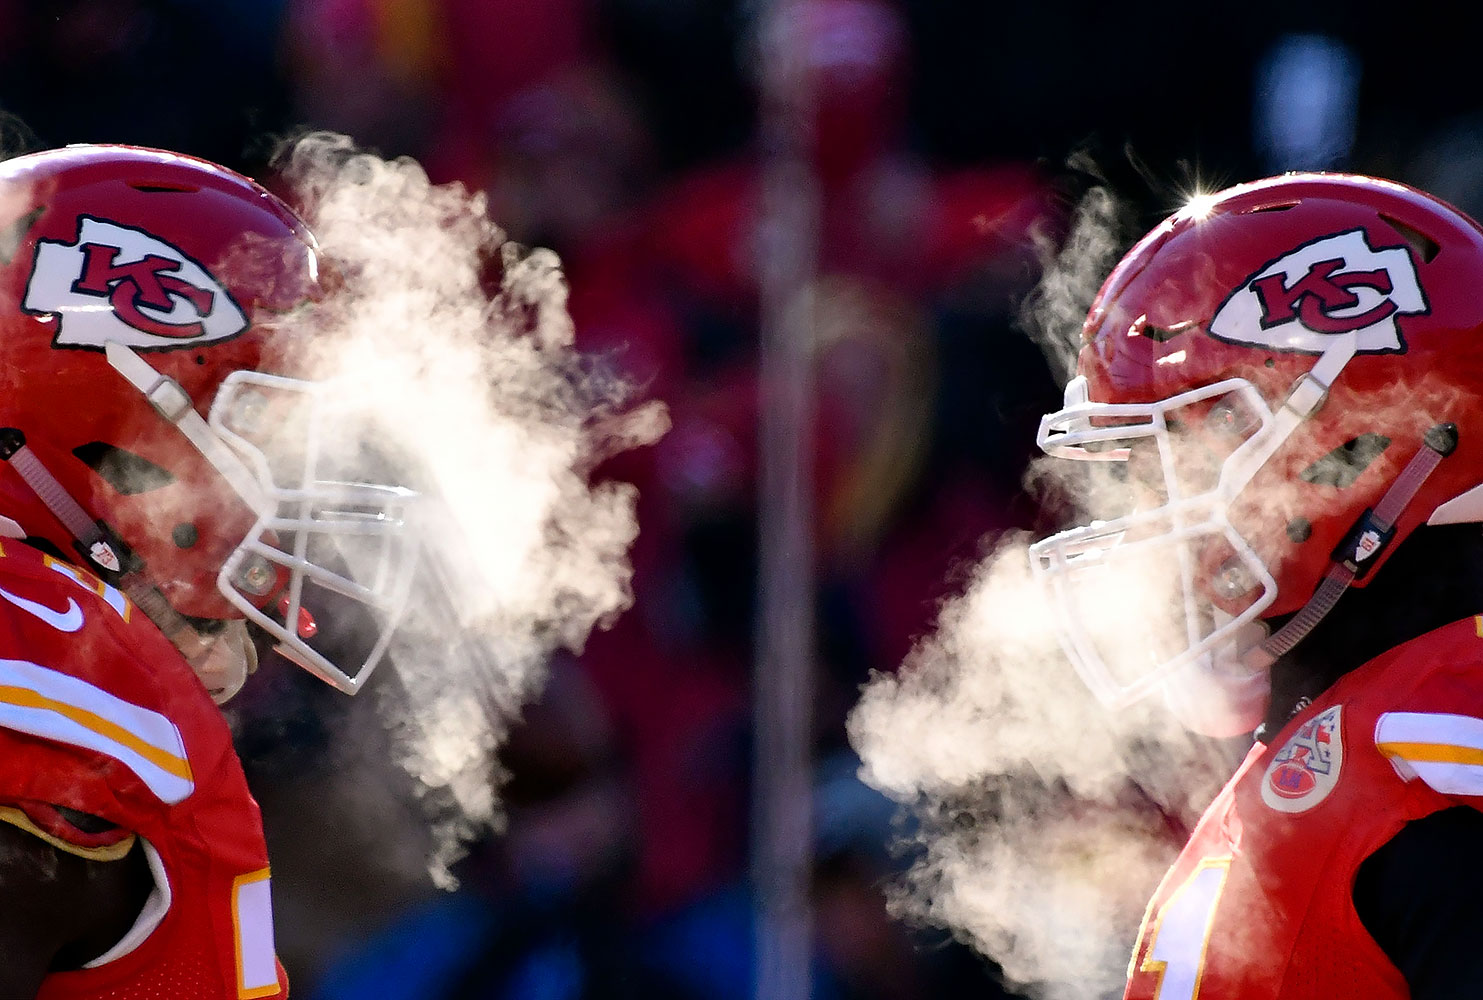 Kansas City Chiefs players' breath masks their faces during the game against the Tennessee Titans on Dec. 18, 2016 at Arrowhead Stadium in Kansas City.